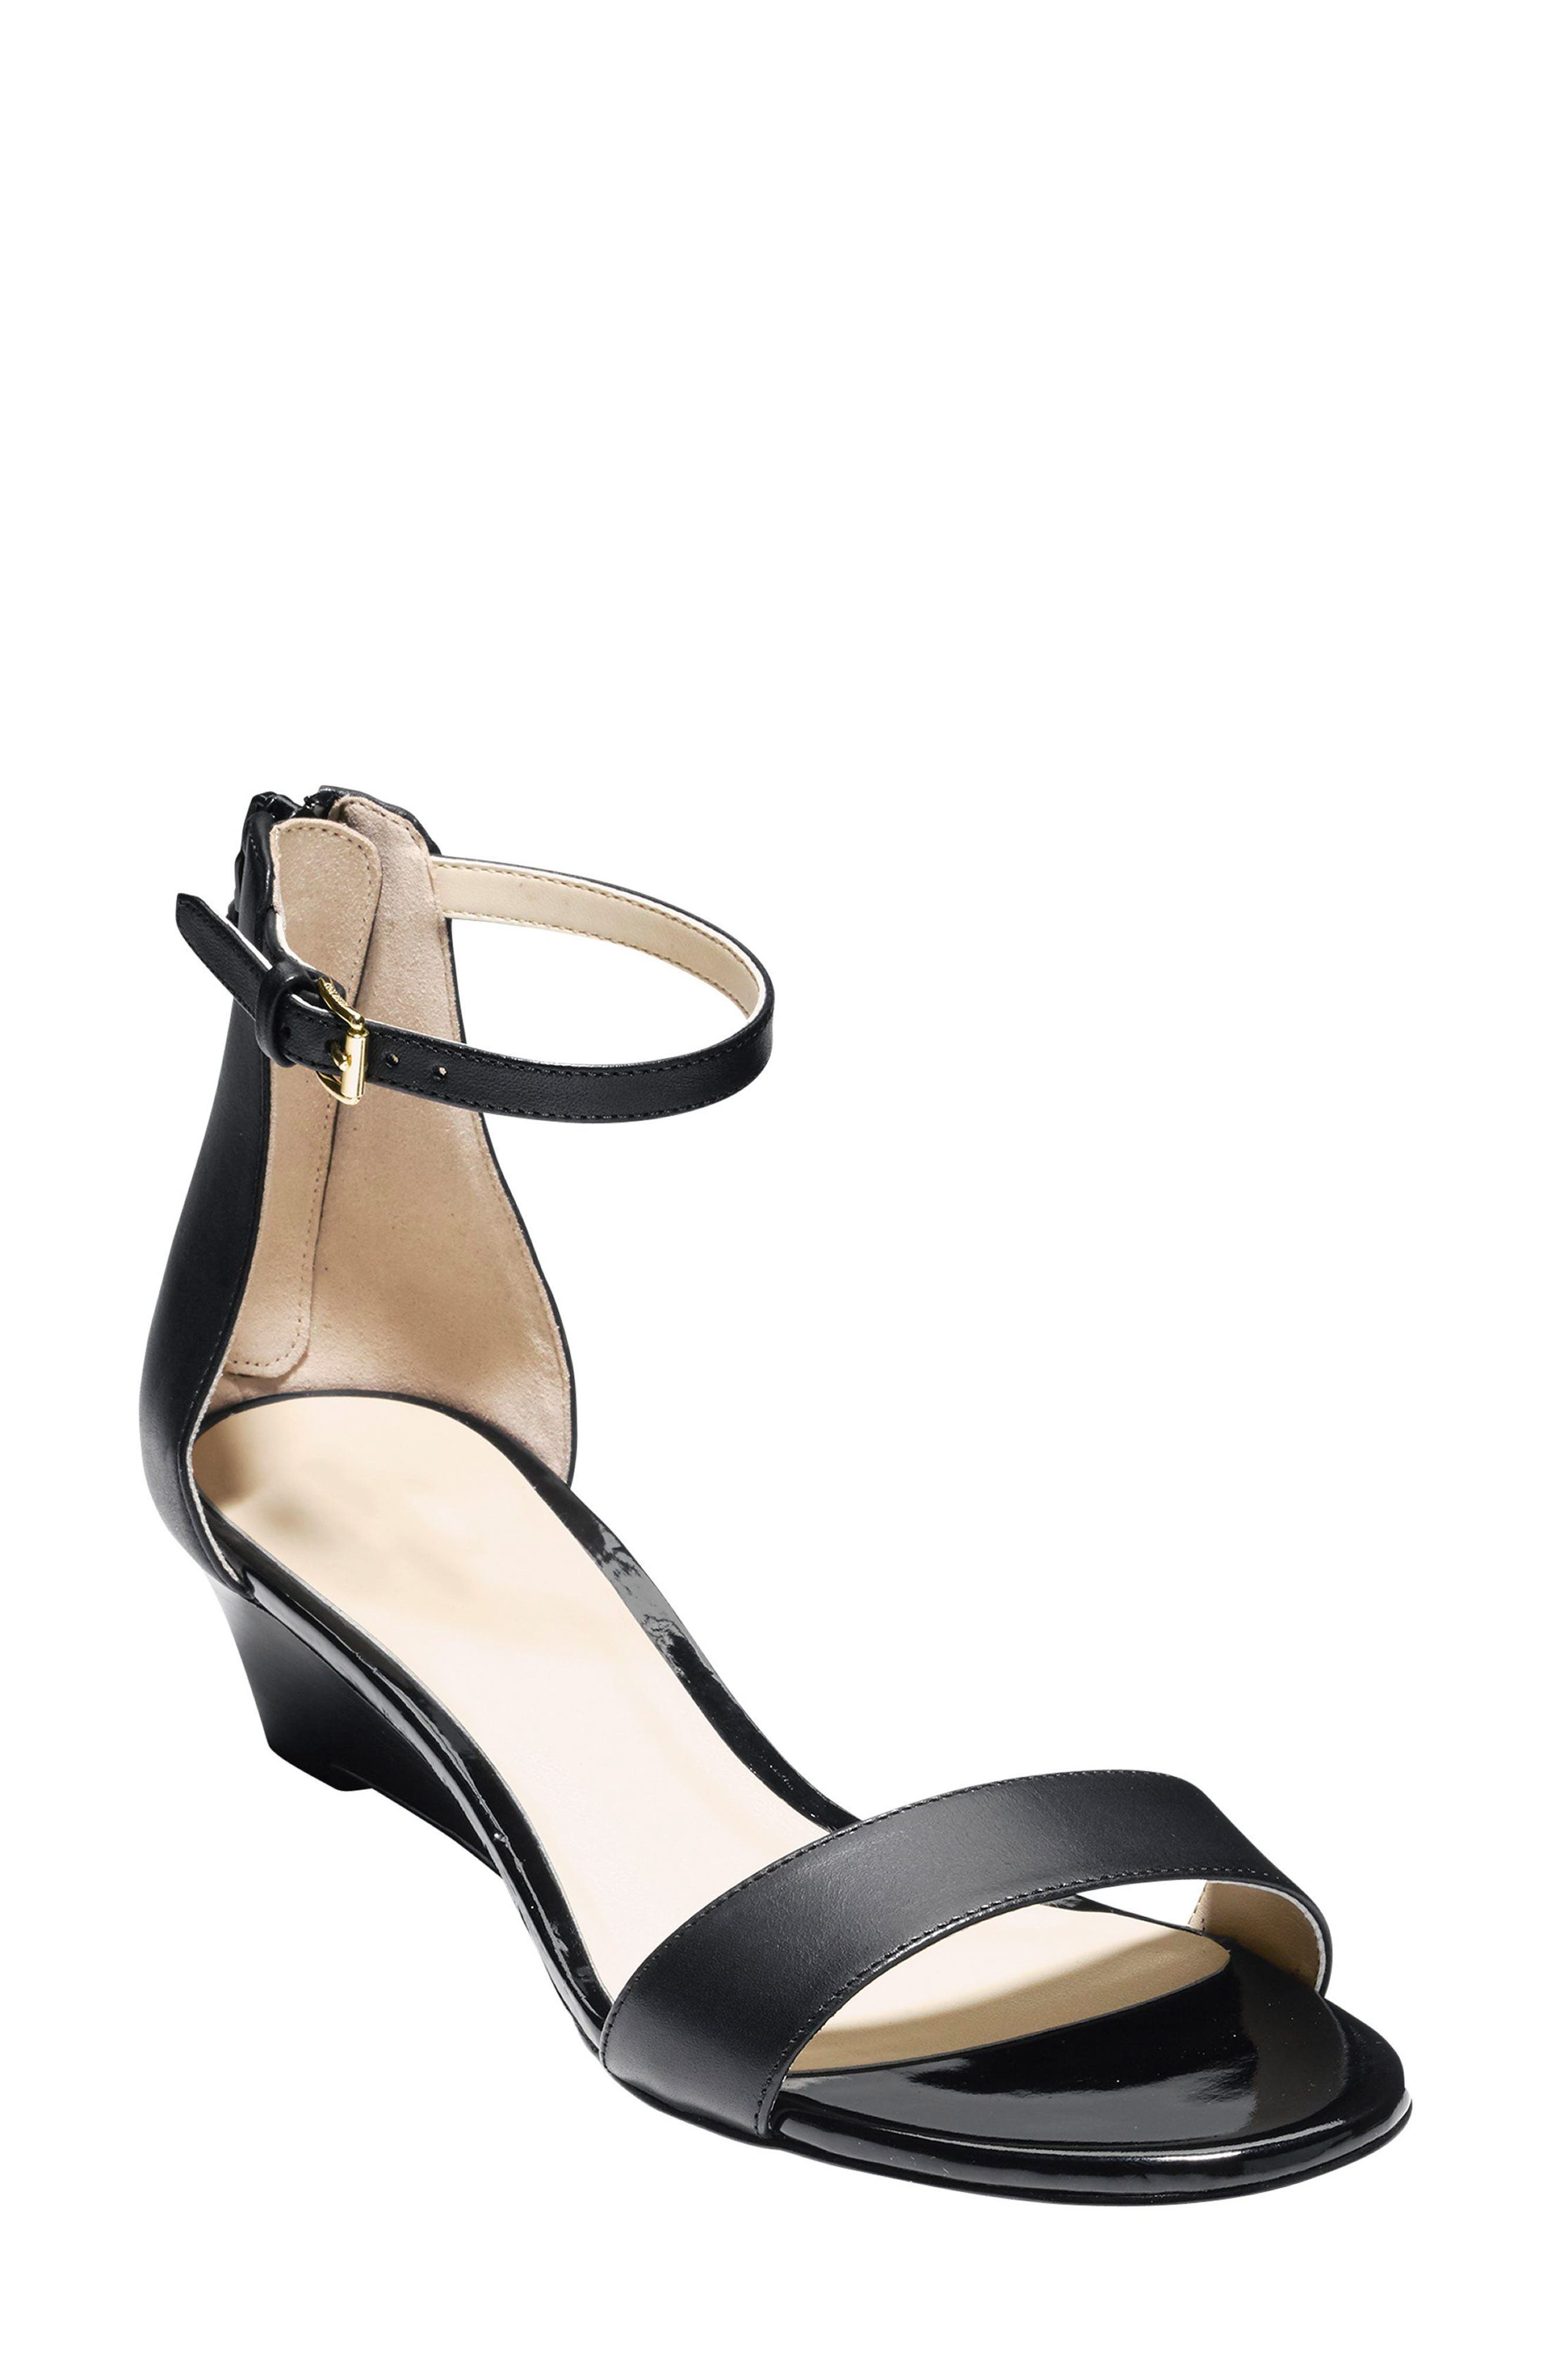 COLE HAAN,                             Adderly Sandal,                             Main thumbnail 1, color,                             001